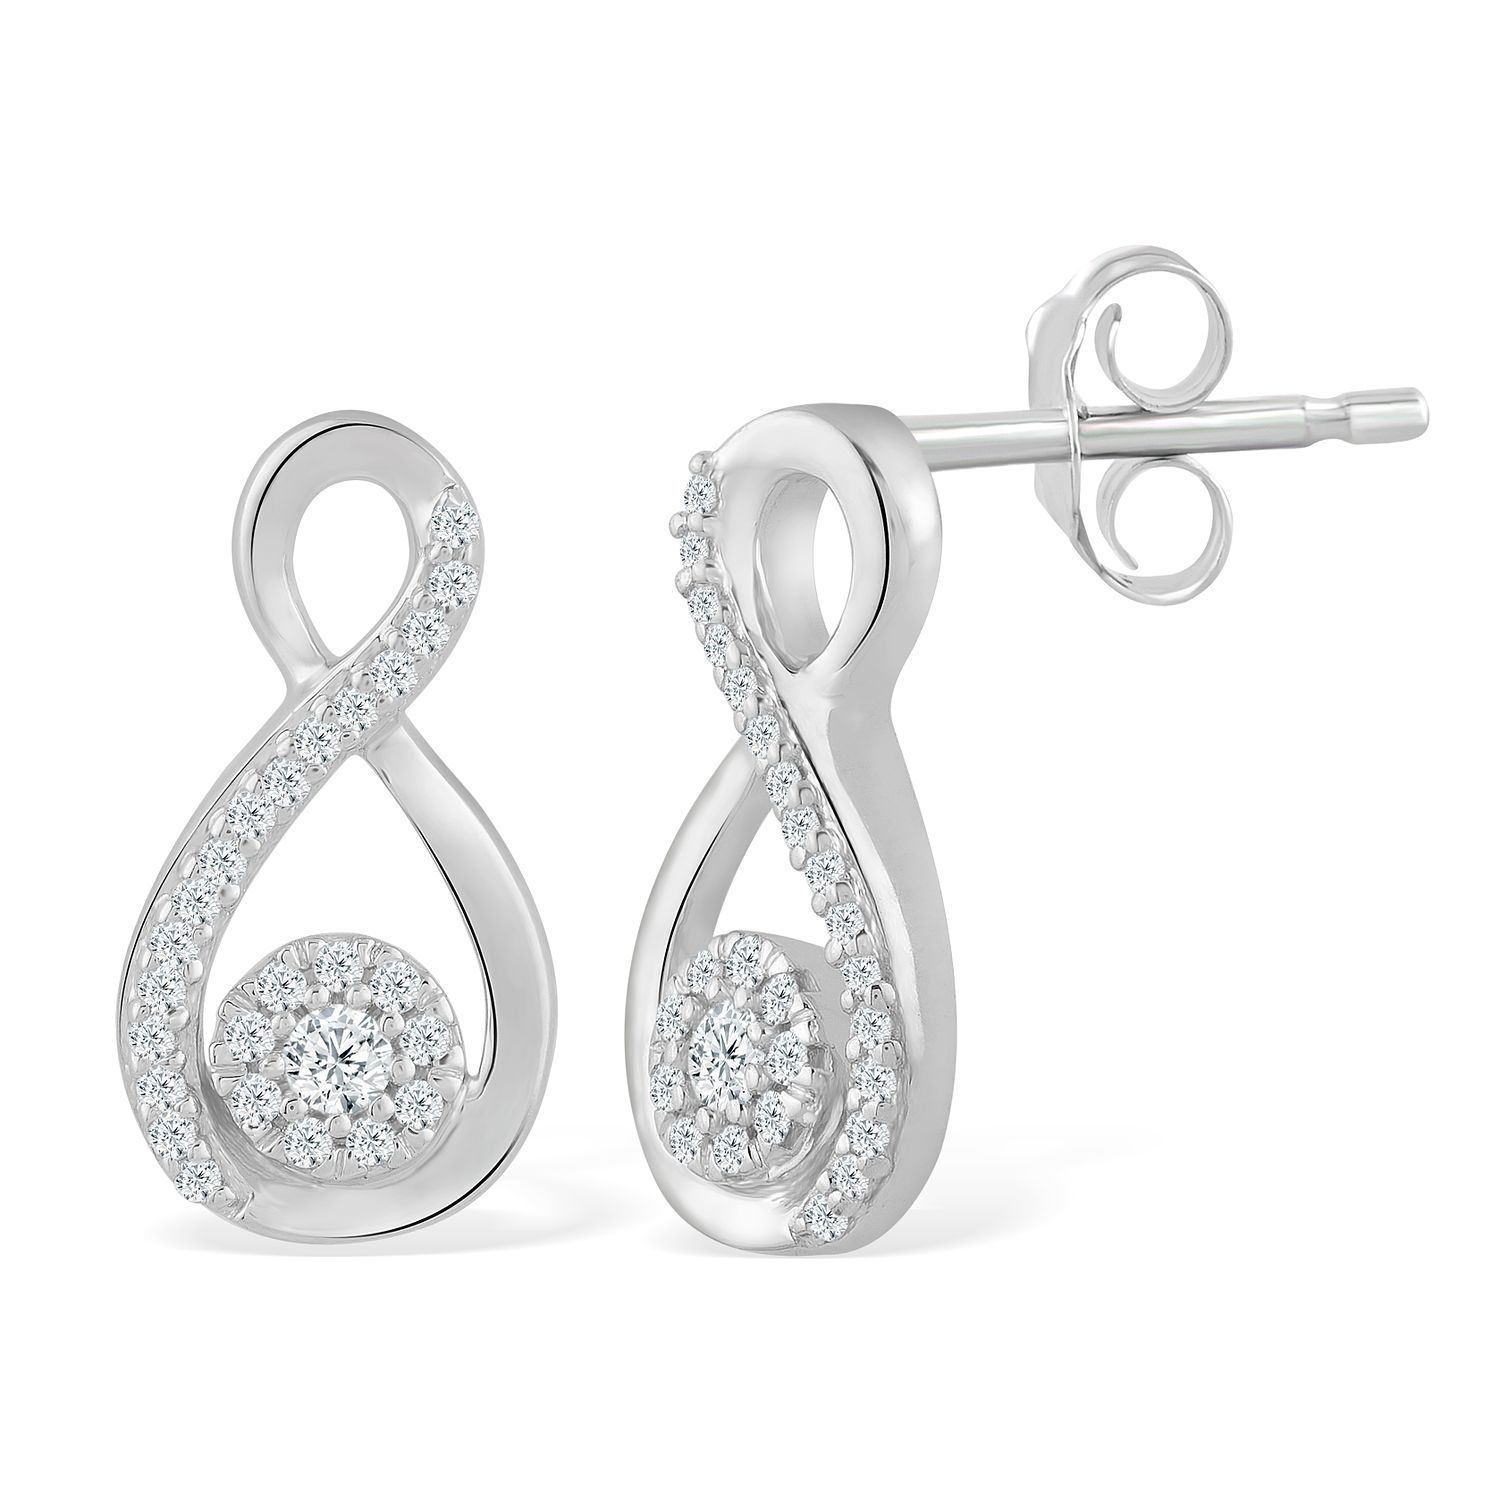 9ct White Gold 1/10ct Diamond Infinity Stud Earrings - Product number 5044138